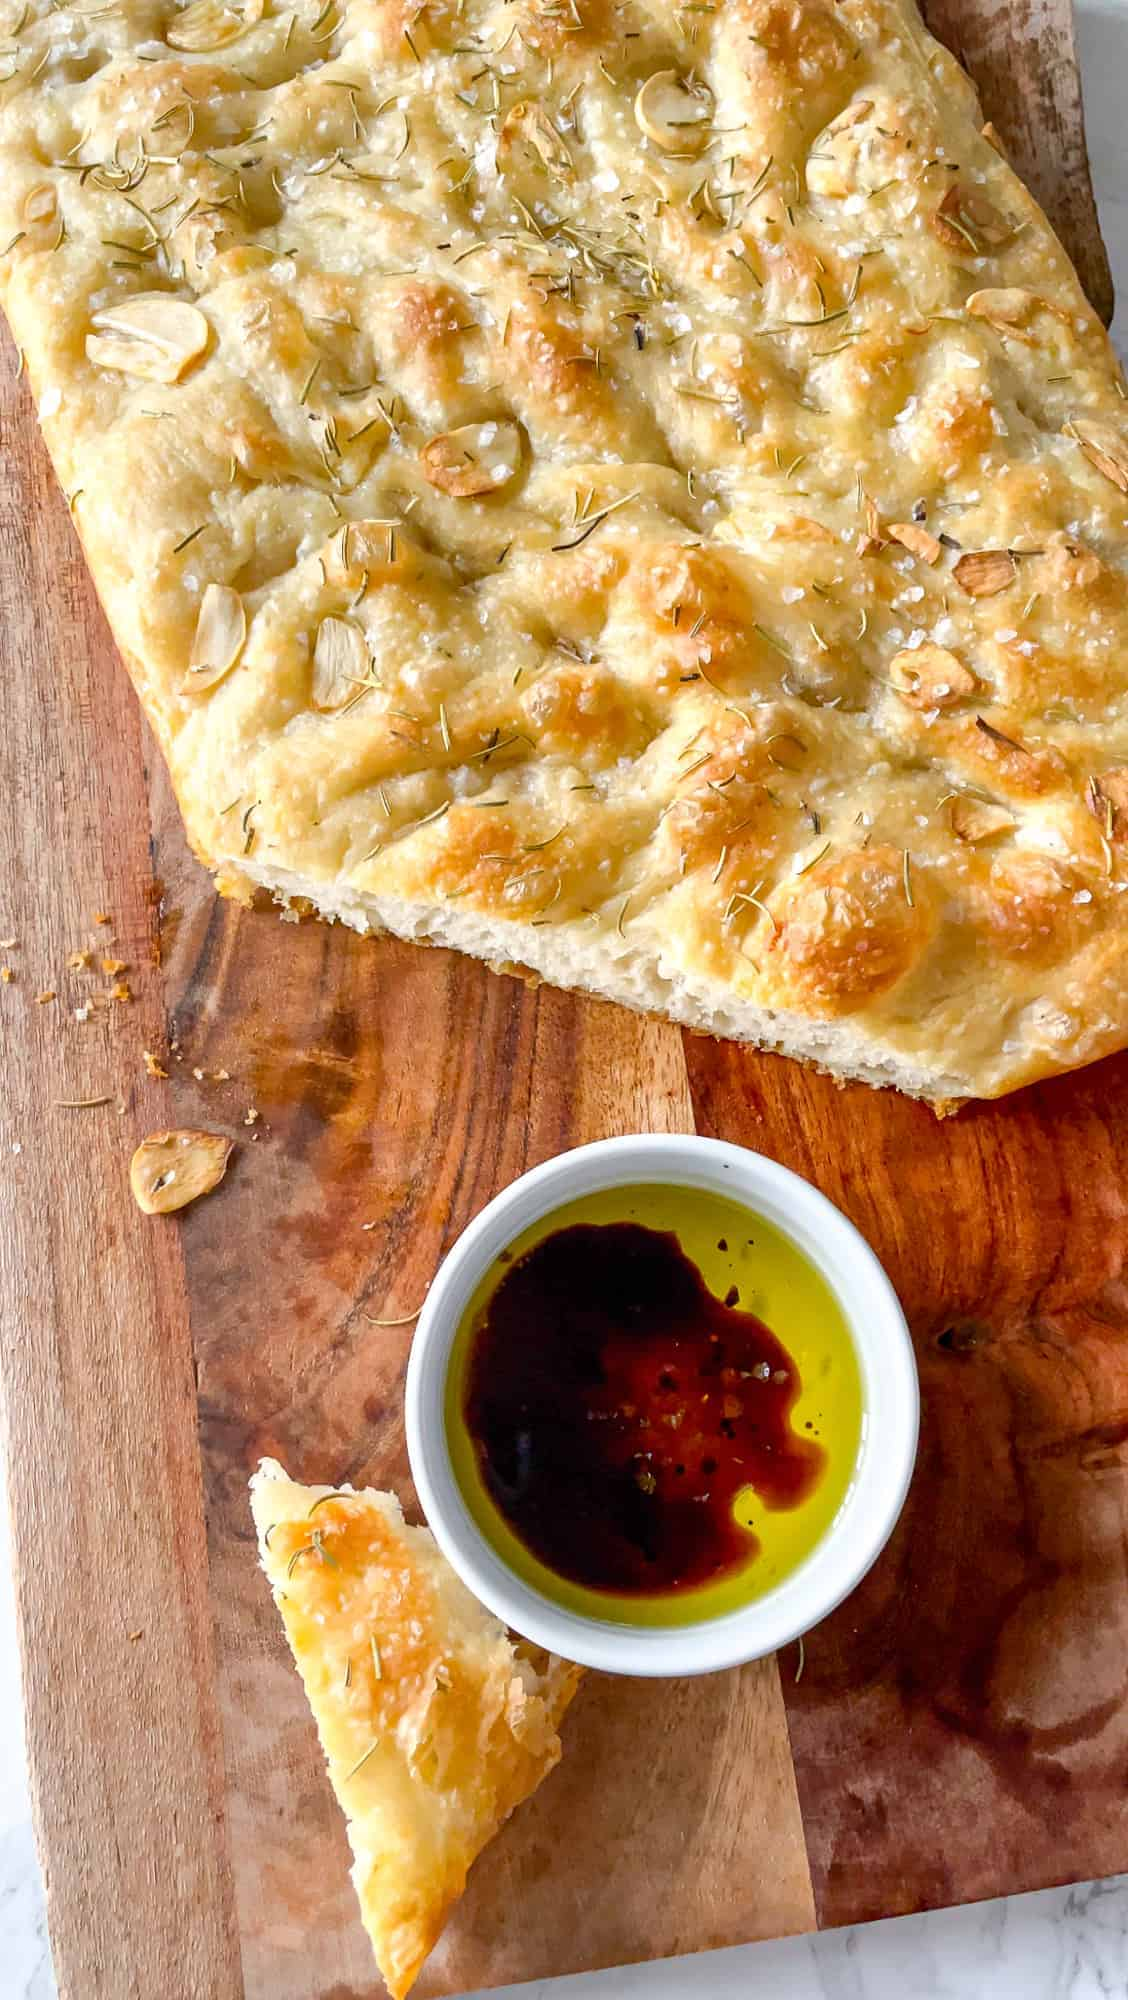 focaccia bread on a cutting board cut with a small bowl of balsamic vinegar and olive oil beside it